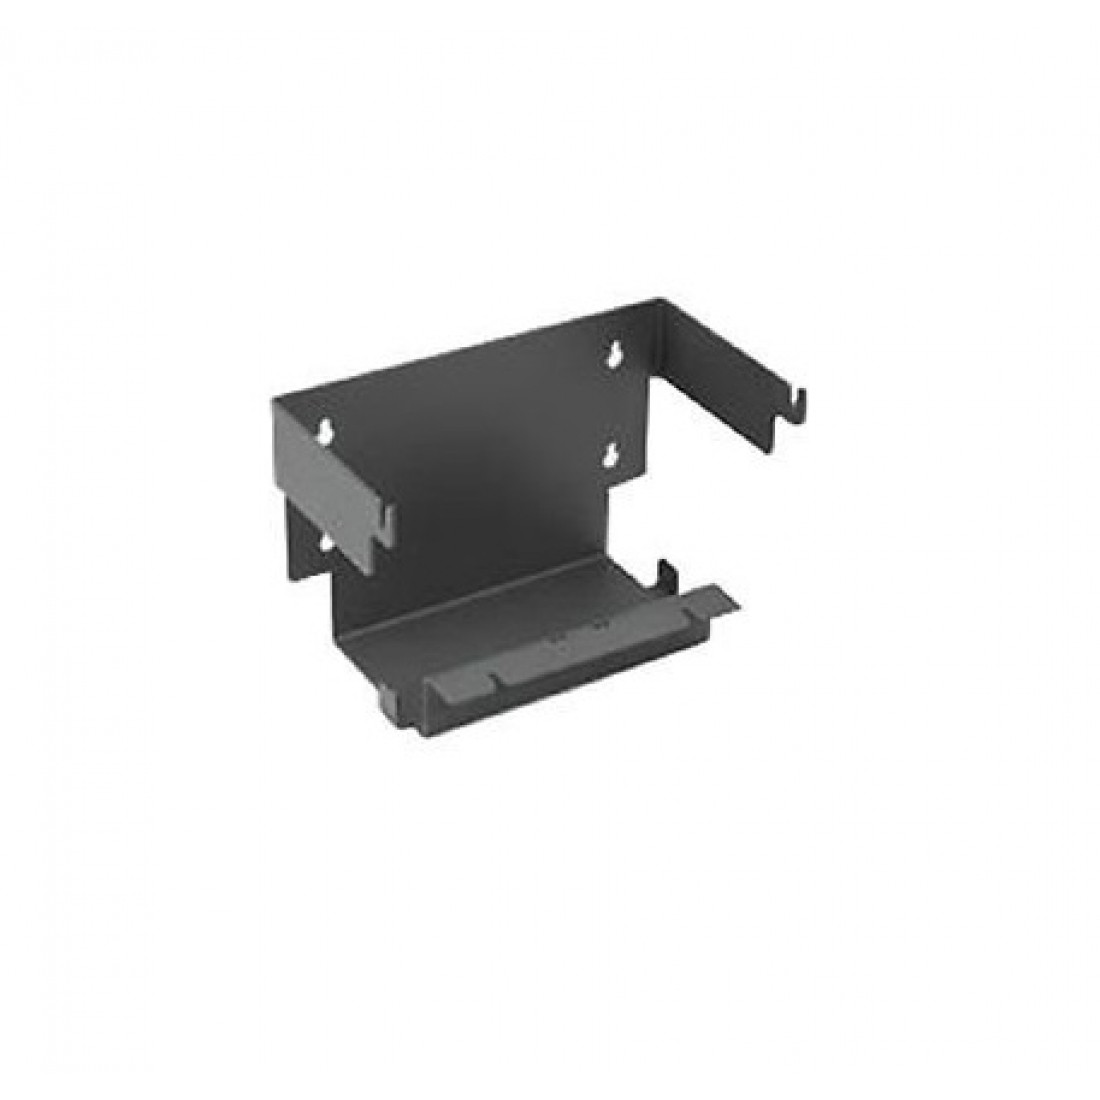 Afbeelding van Mounting bracket for adapting DS457